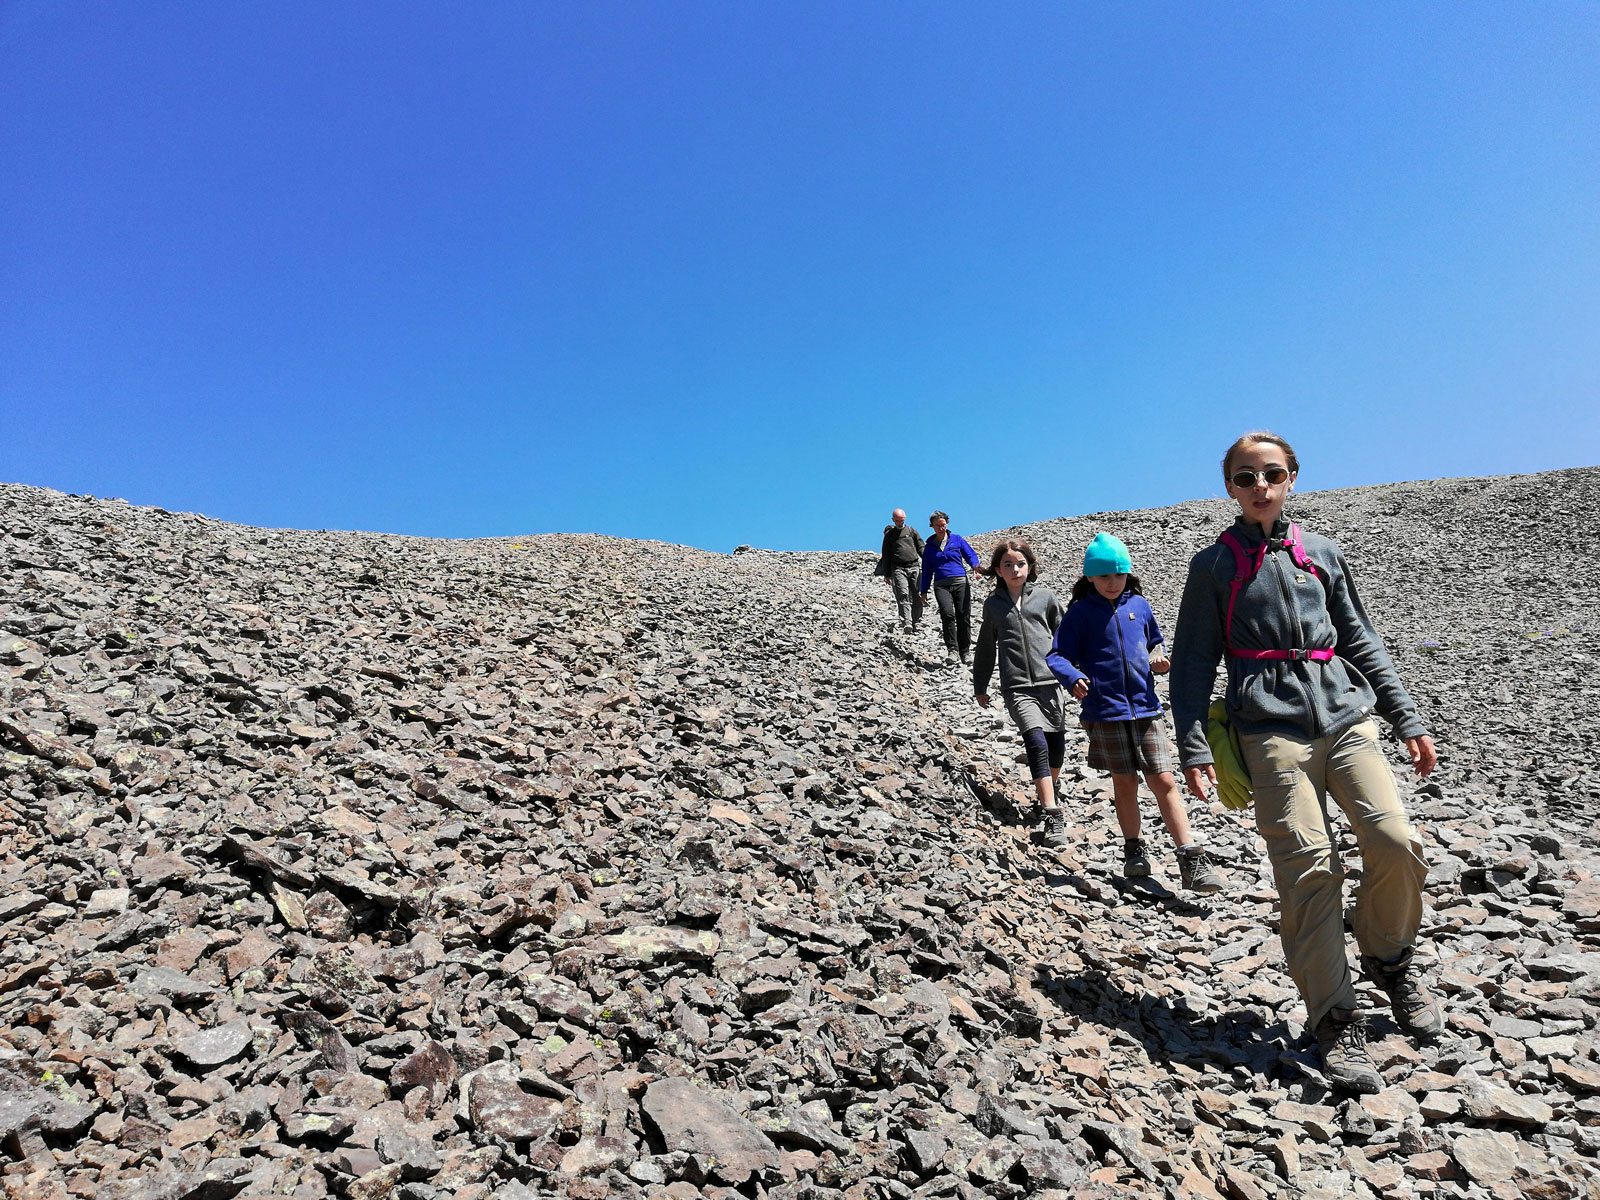 Hikers walking down a scree covered mountainside descending Avalanche Peak in Yellowstone National Park